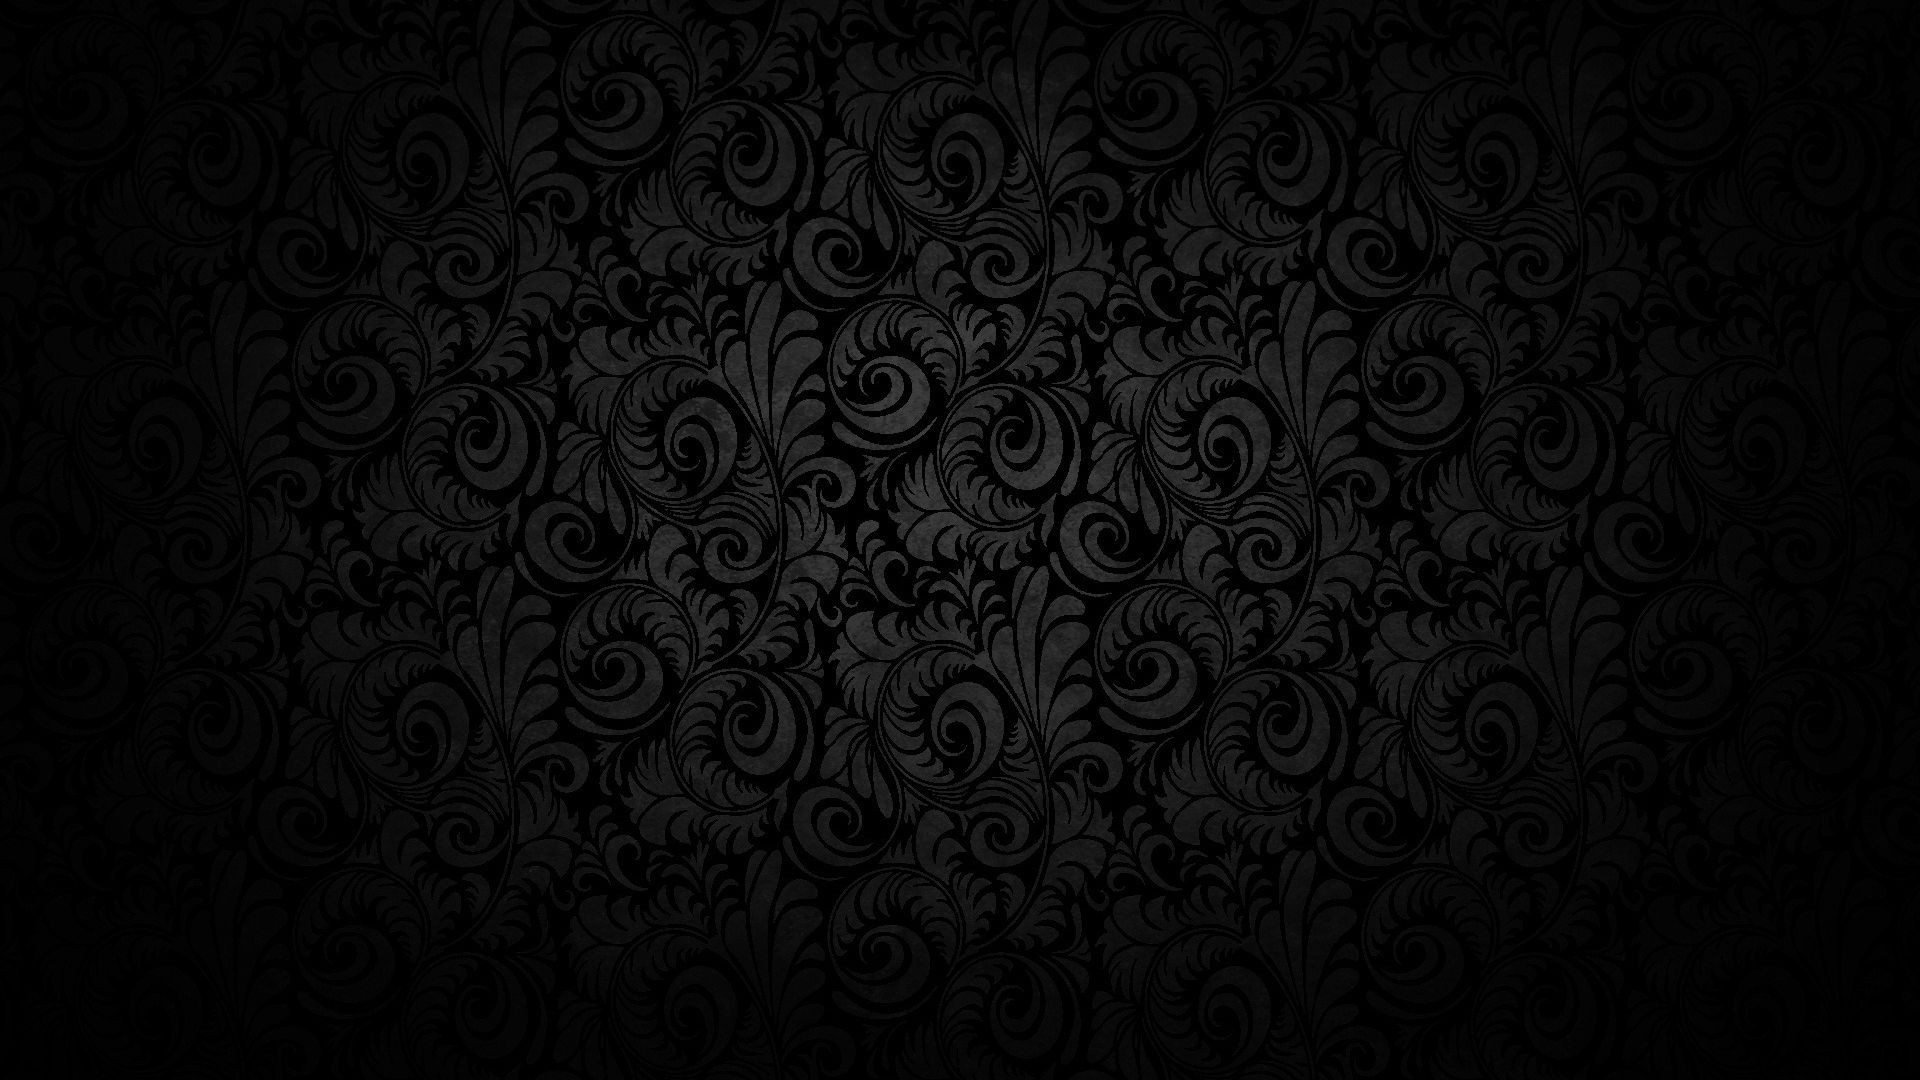 1920x1080 Hd 1080P Abstract Wallpaper ...